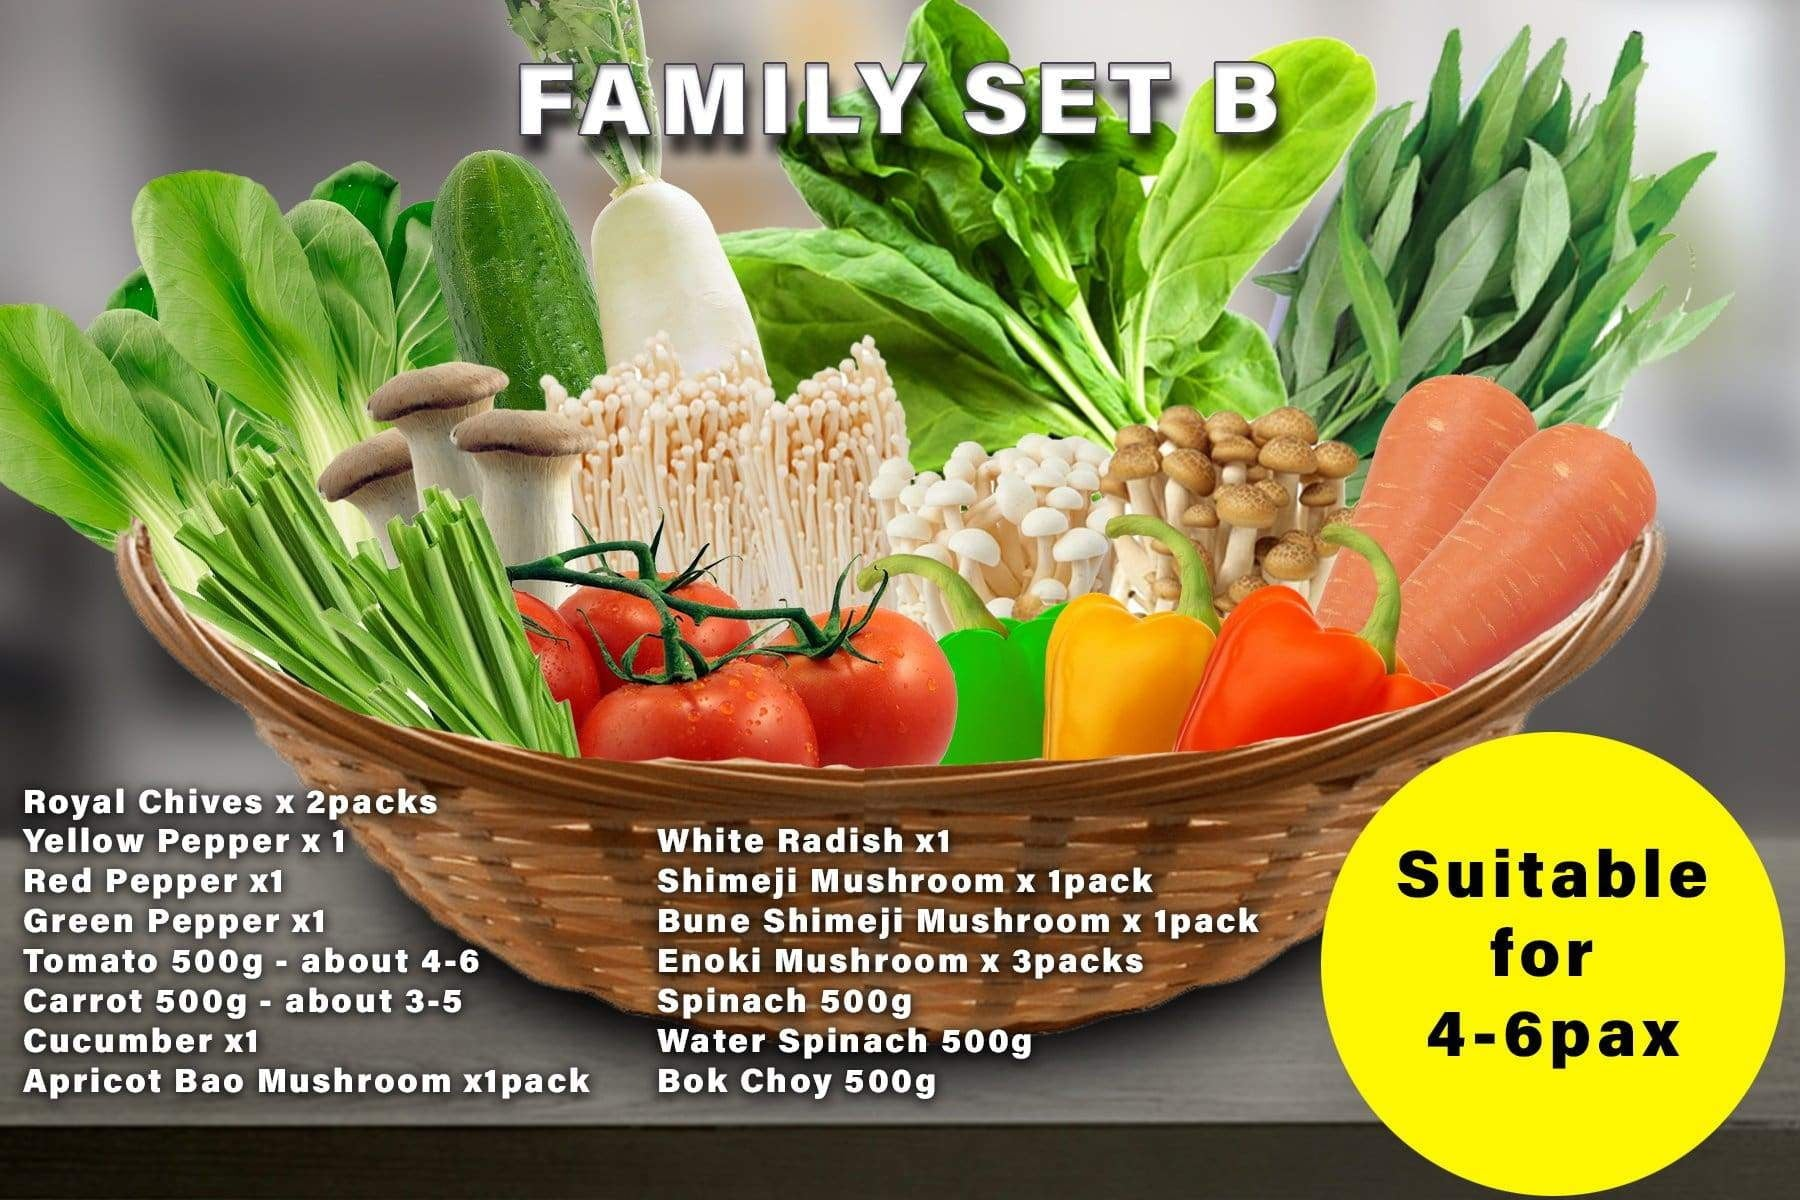 Penang Grocery Store Online Next Day Delivery is Offering Family Set B